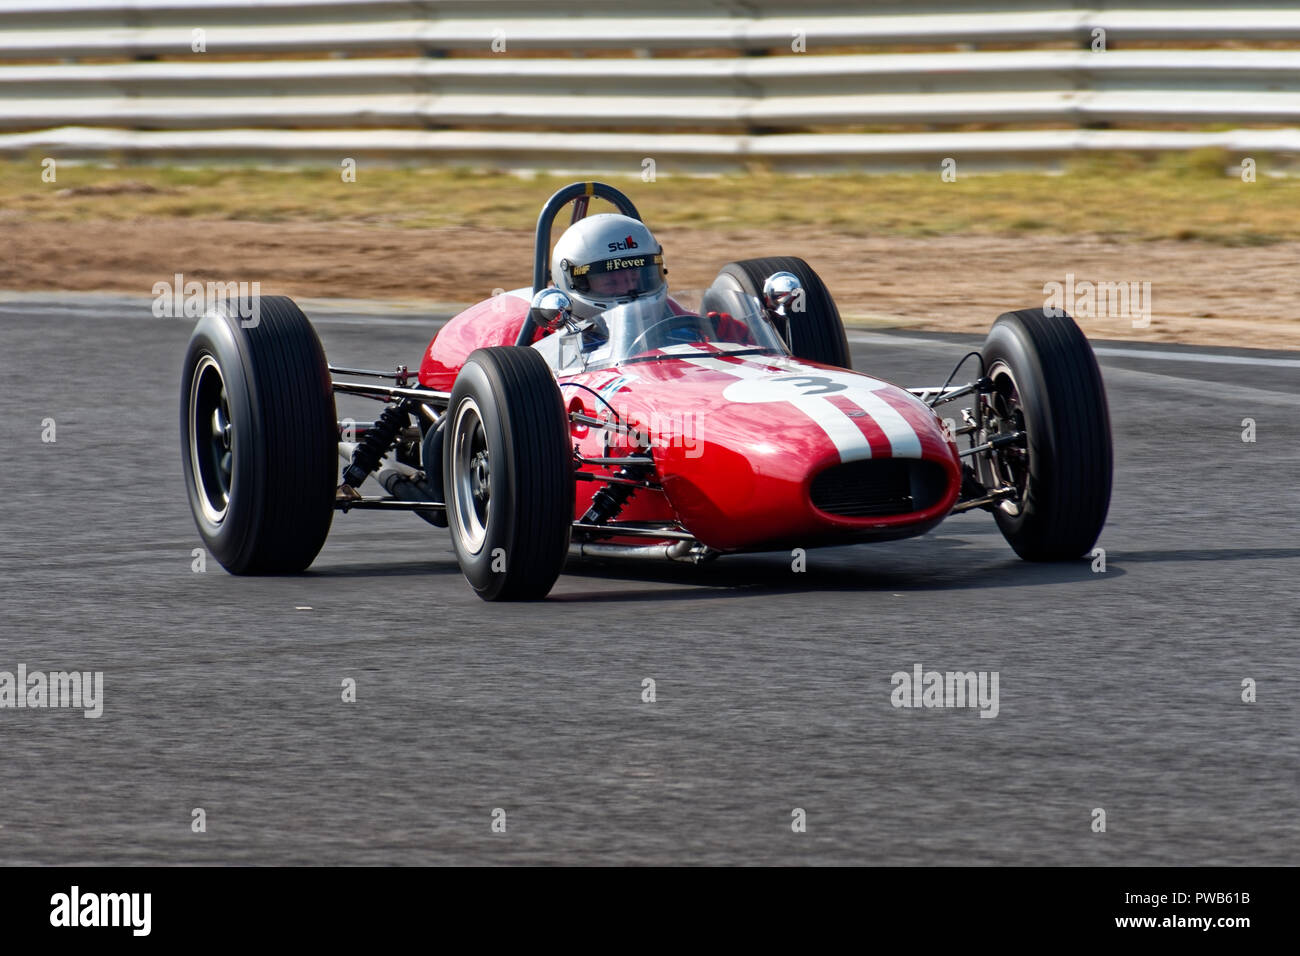 Jarama Circuit, Madrid, Spain. 13th - 14th October, 2018: Racing car # 3 Brabham Bt11A, 1964, 2.700cc, driver Barry Cannel. Competition of the Historic Grand Prix Cars Association (HGPCA) at the Jarama Circuit in Madrid, Spain. Enrique Palacio Sans./Alamy Live News - Stock Image